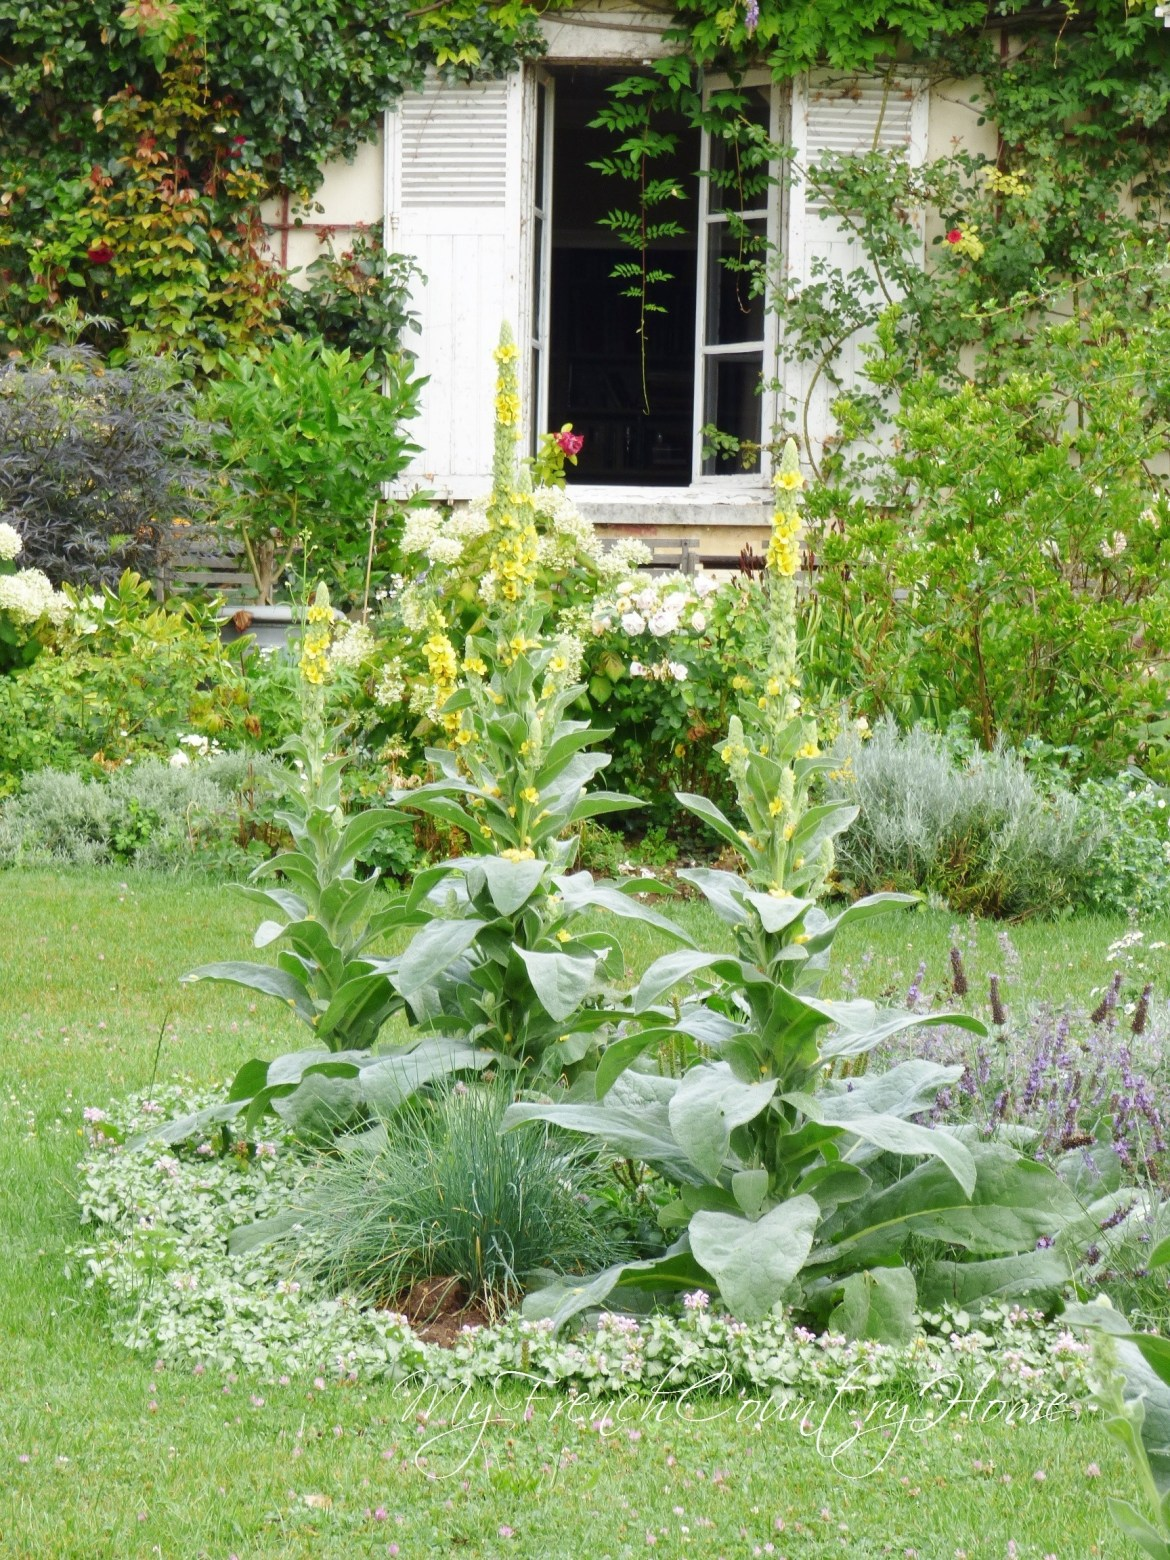 parterres-update-my-french-country-home.5jpg